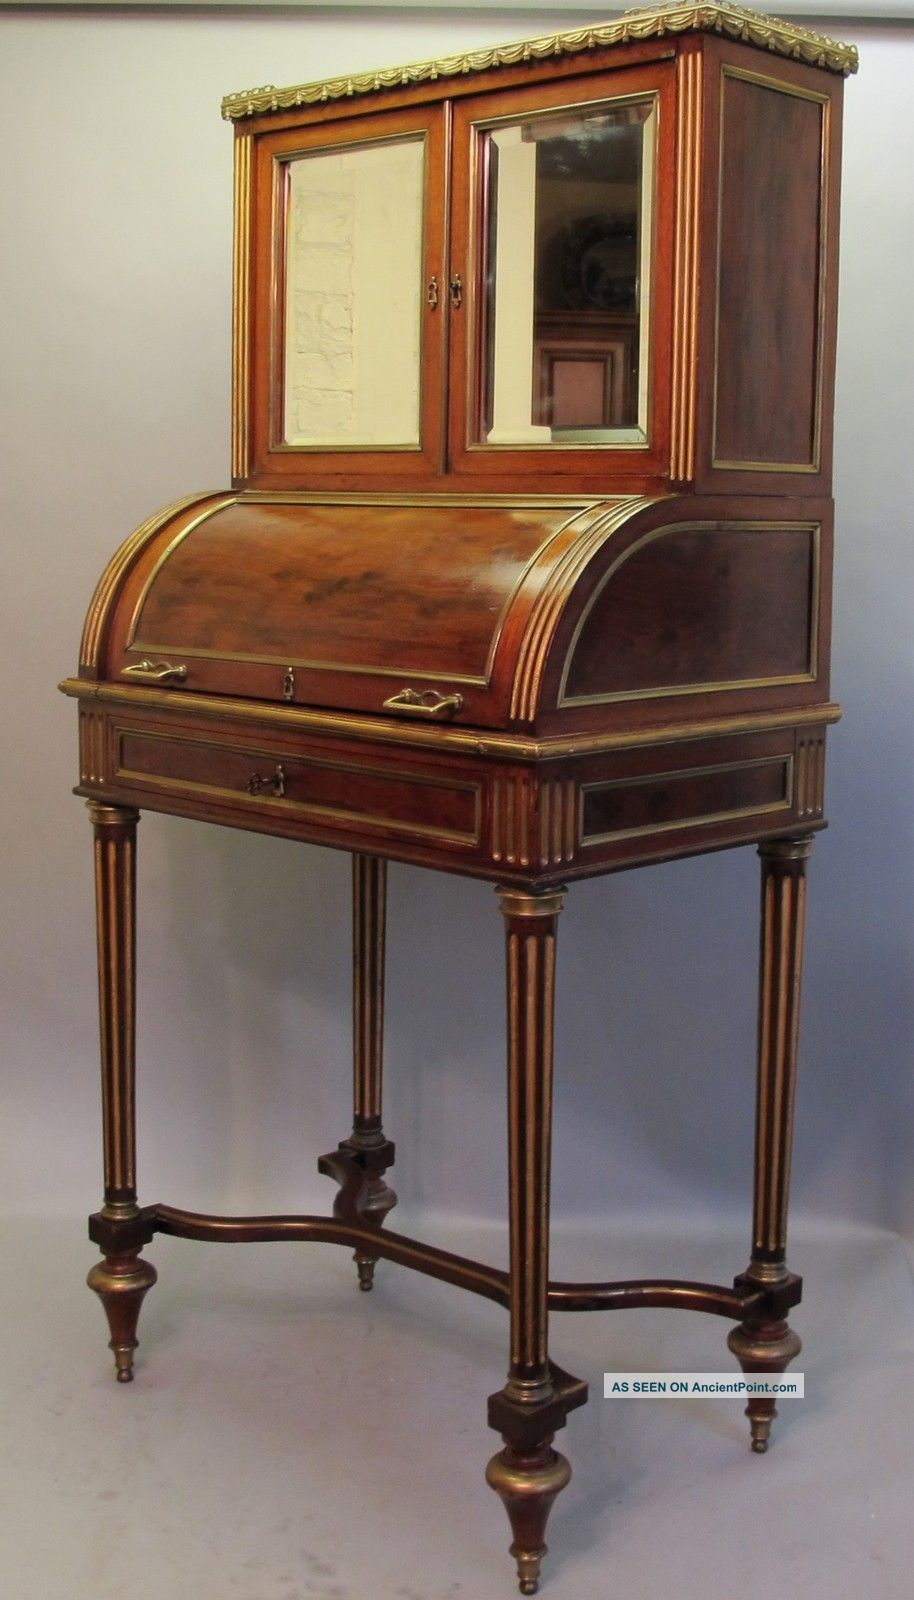 & Rare 19th C.  French Rosewood Cylinder Writing Desk C.  1890 Table 1800-1899 photo